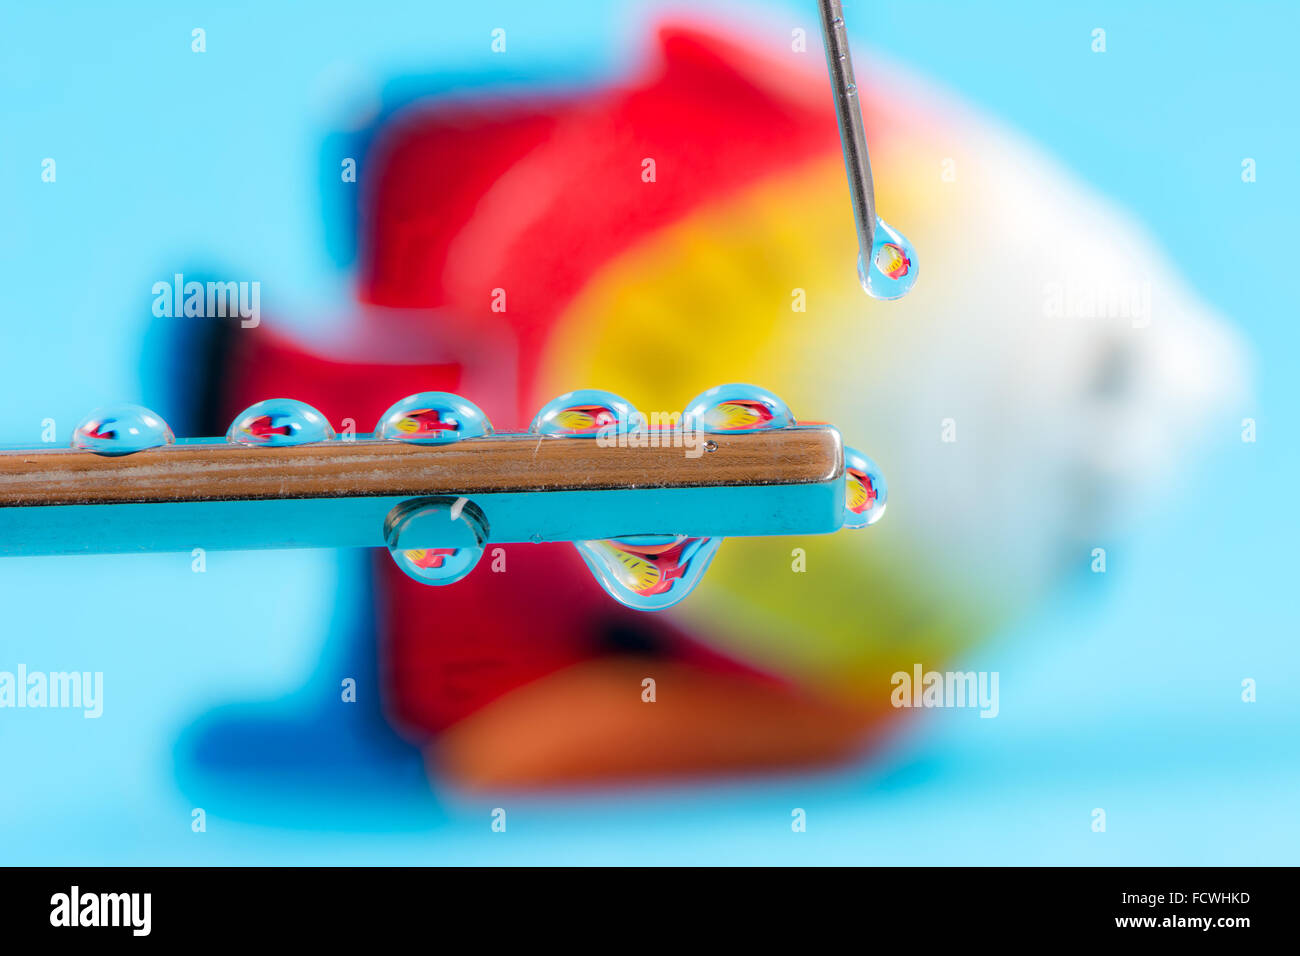 Fish reflections in a drops from a syringe - could be used to illustrate genetic engeneering, cloning or biotechnology - Stock Image